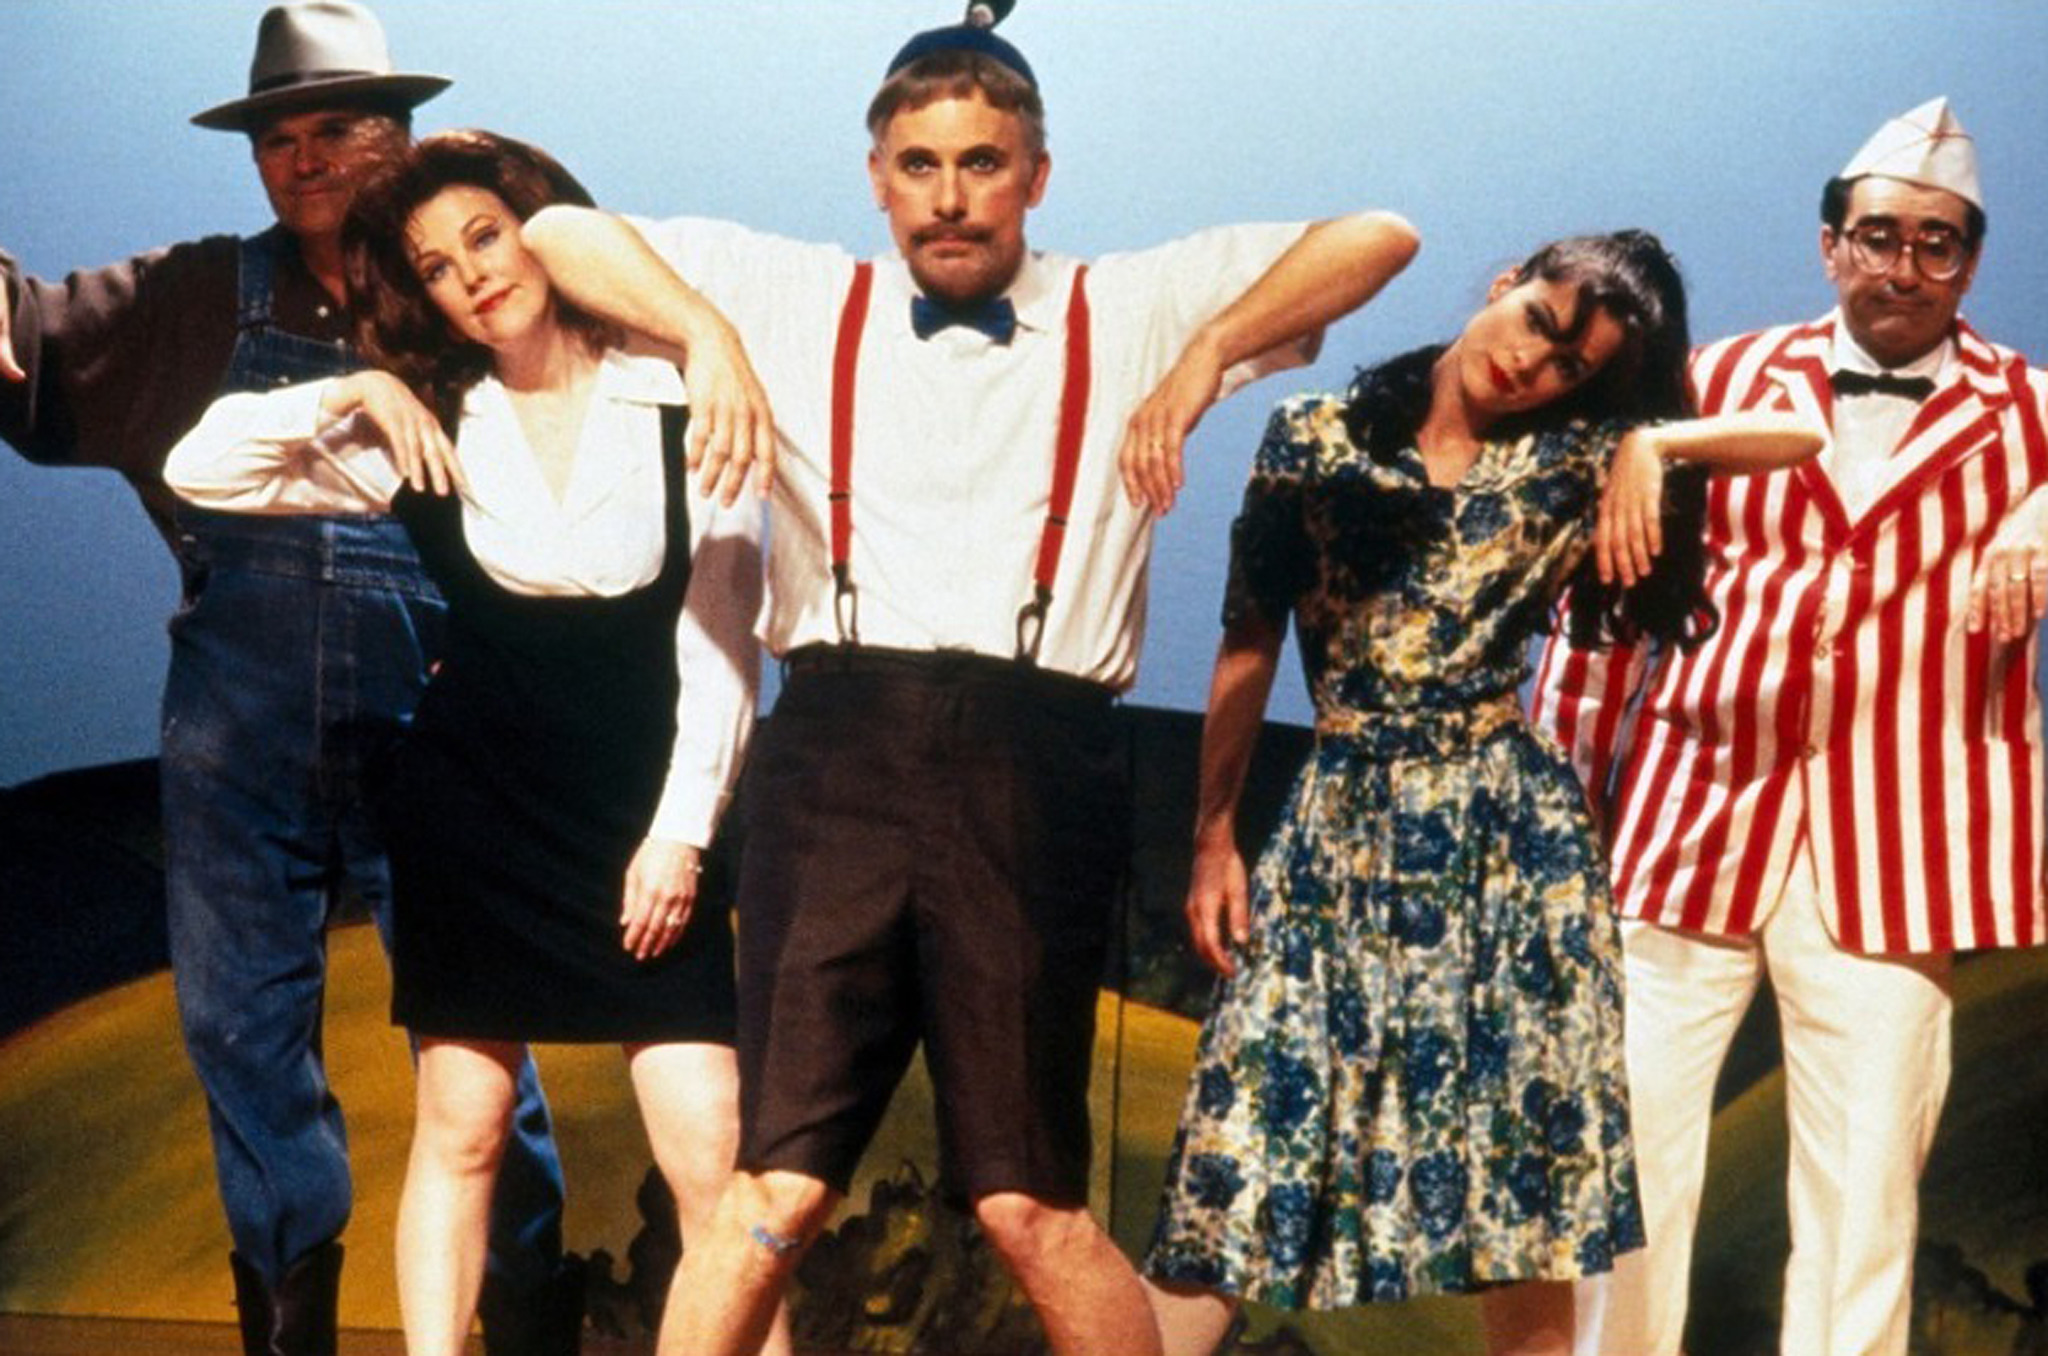 Waiting for Guffman (1997)